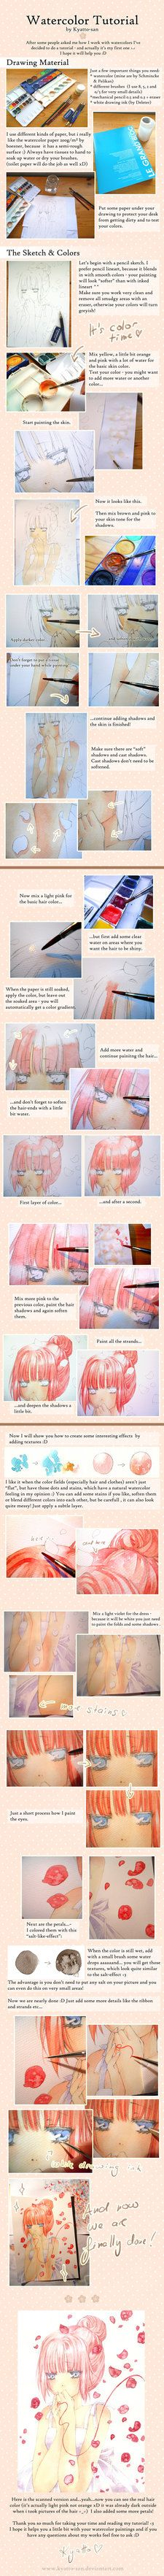 OMG it's done... It took me so much time to put this together ;___; but I've always wanted to do a watercolor tutorial, because some people seem to be quite interested...and yeah here it is I hope ...